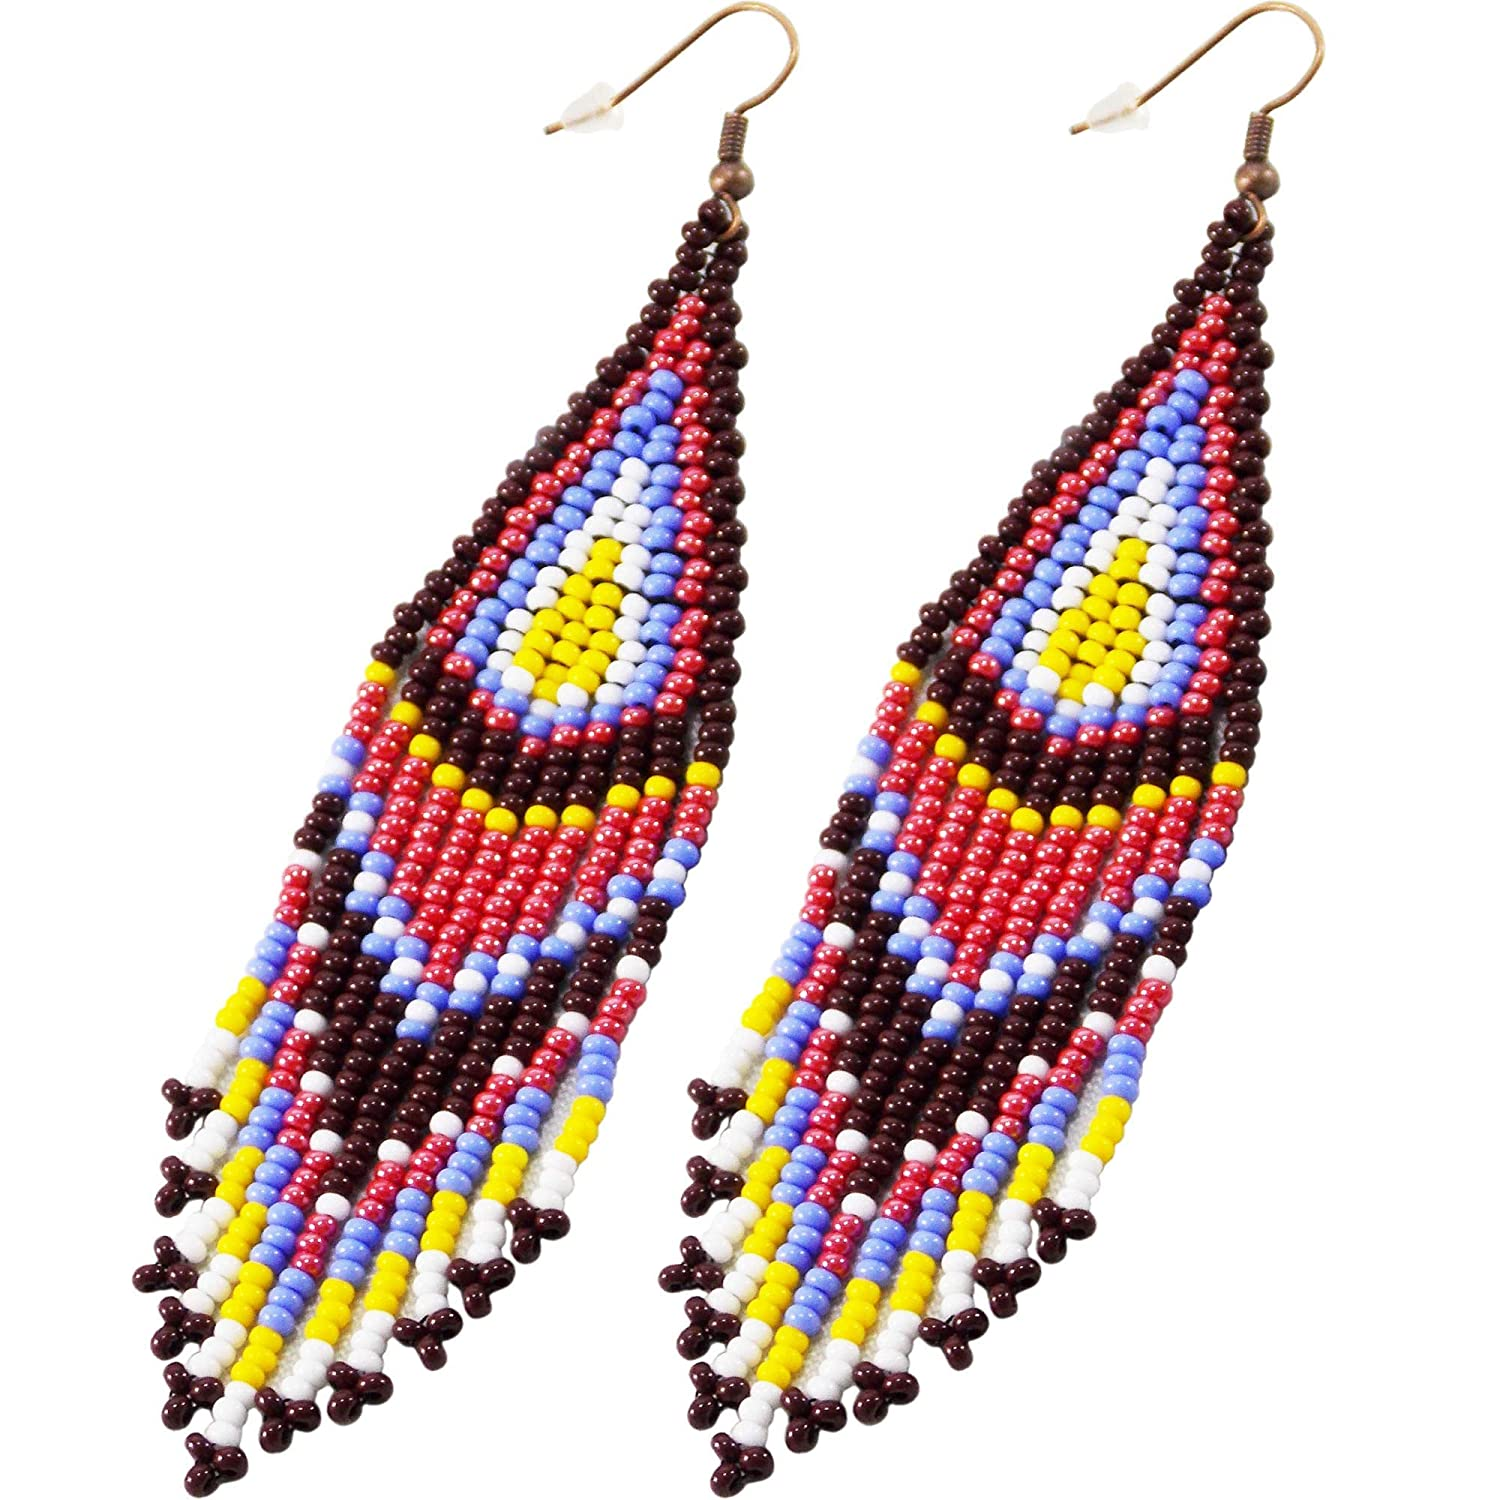 Vintage White Red and Blue Beaded Earrings For Her Seed Bead Earrings Vintage Seed Bead Earrings Yellow White ?Bloue Earrings Red